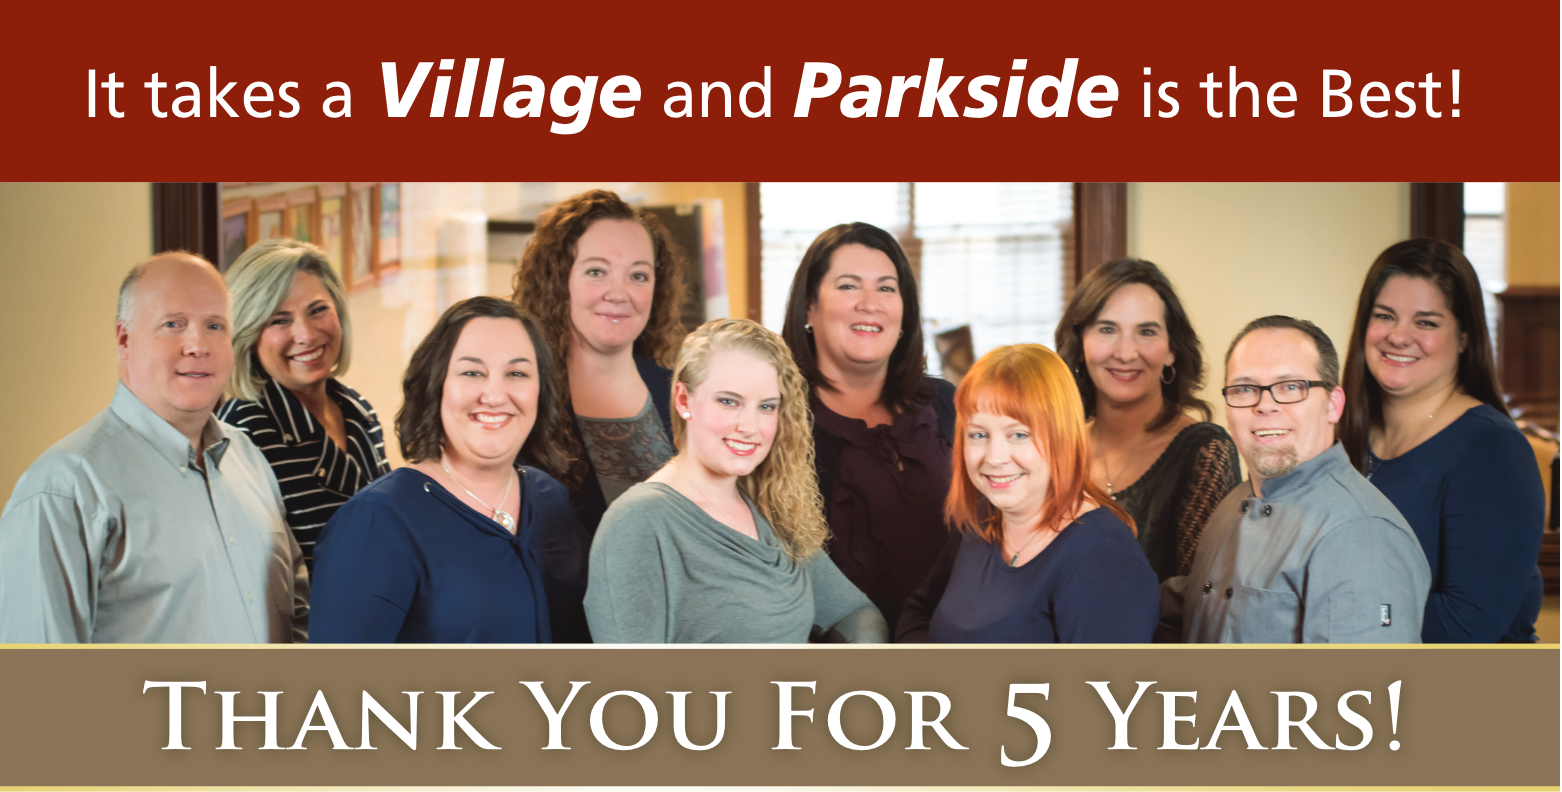 Parkside's 5 Year Anniversary